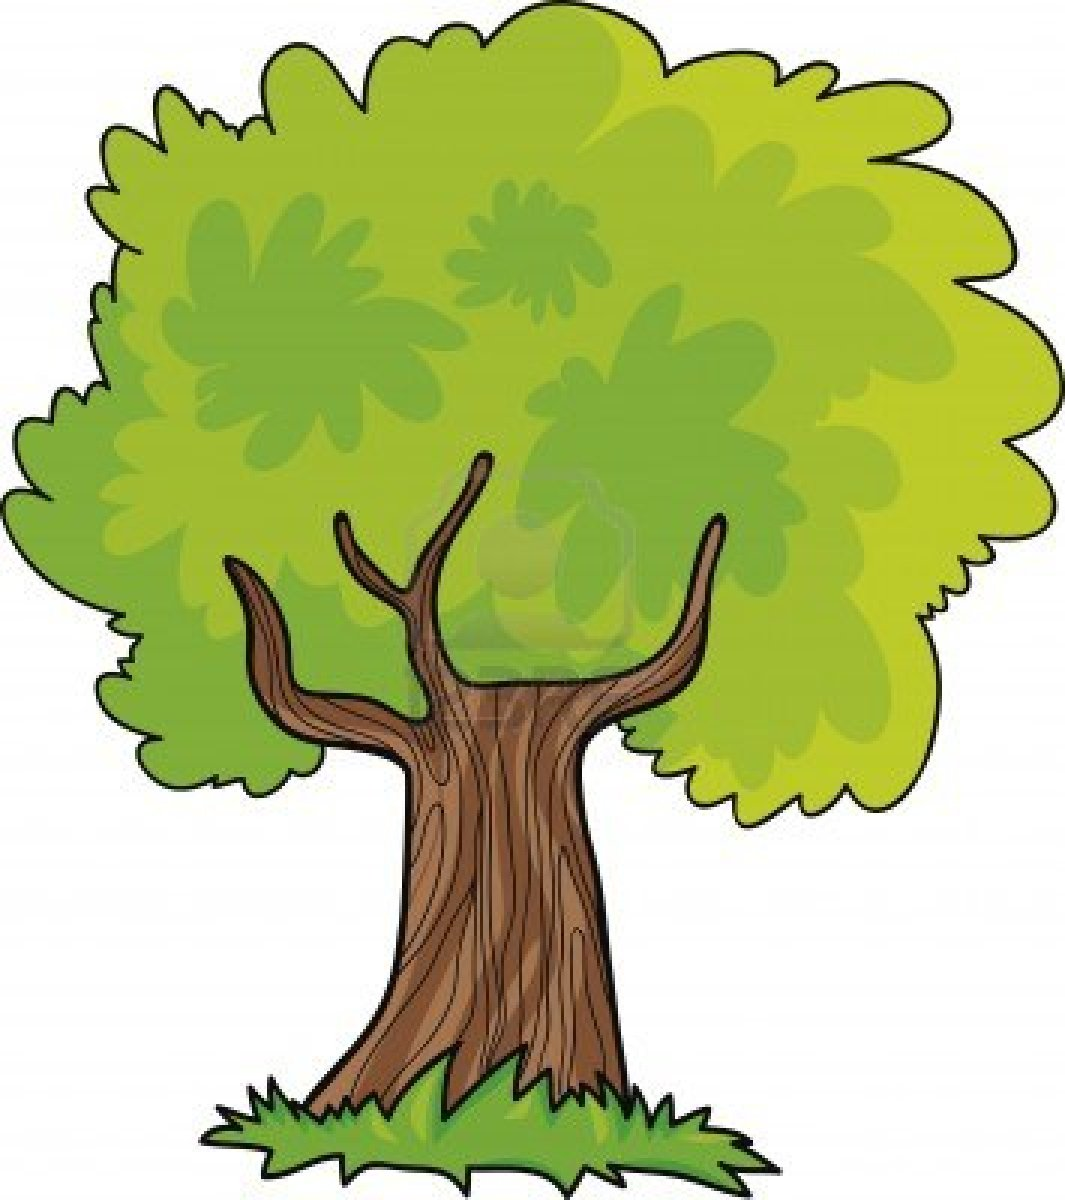 oak tree silhouette clip art free at getdrawings com free for rh getdrawings com oak tree clip art black and white oak tree clipart images